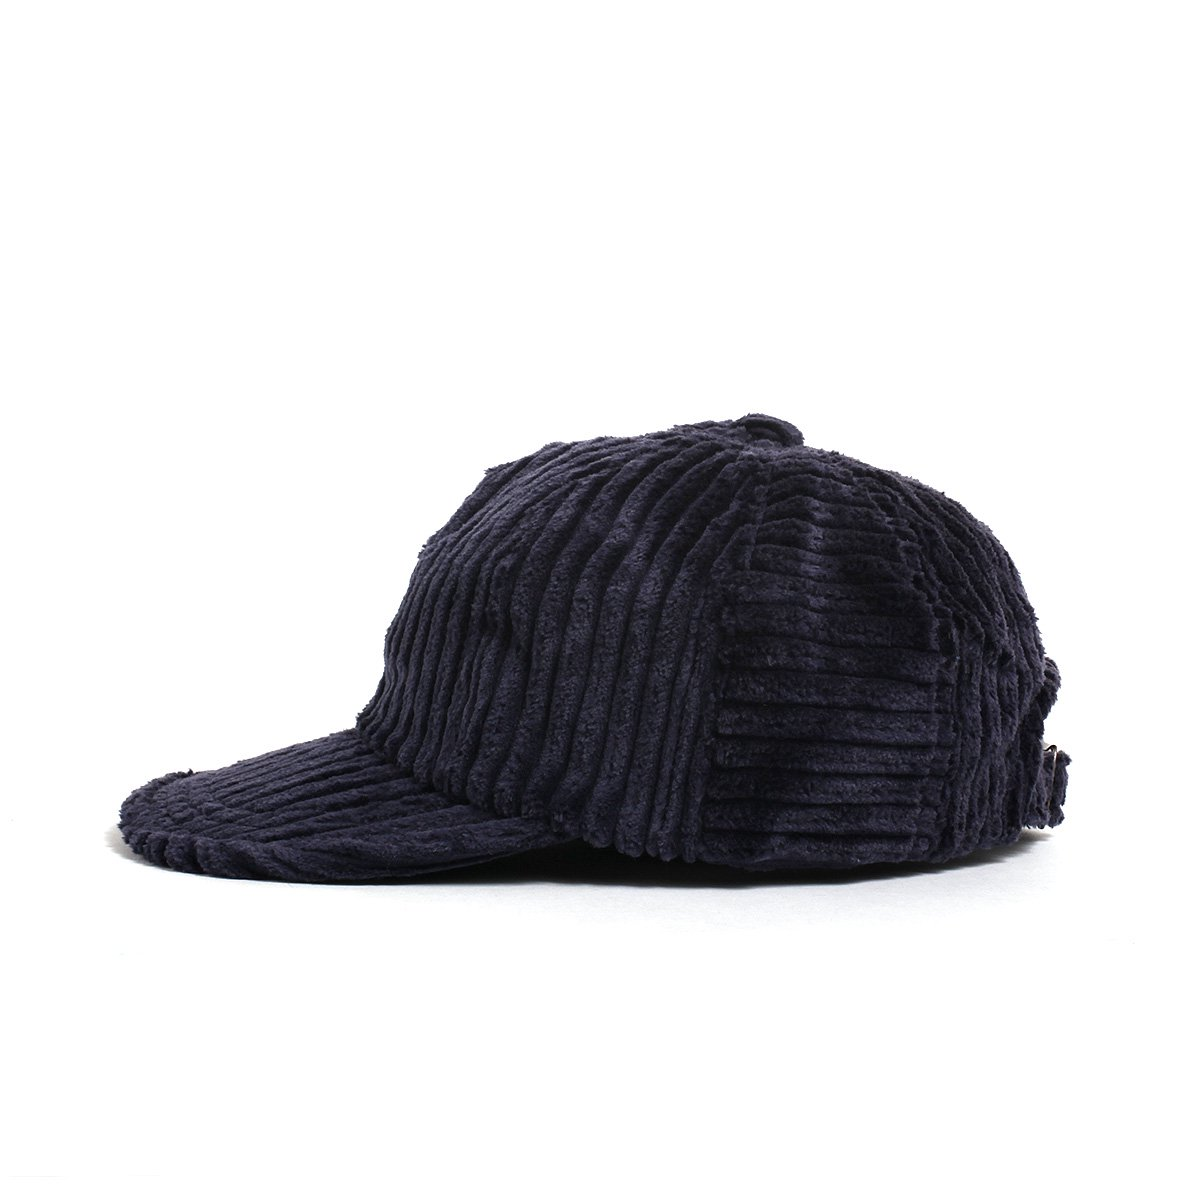 WIDE CORDUROY 8PANEL CAP 詳細画像2